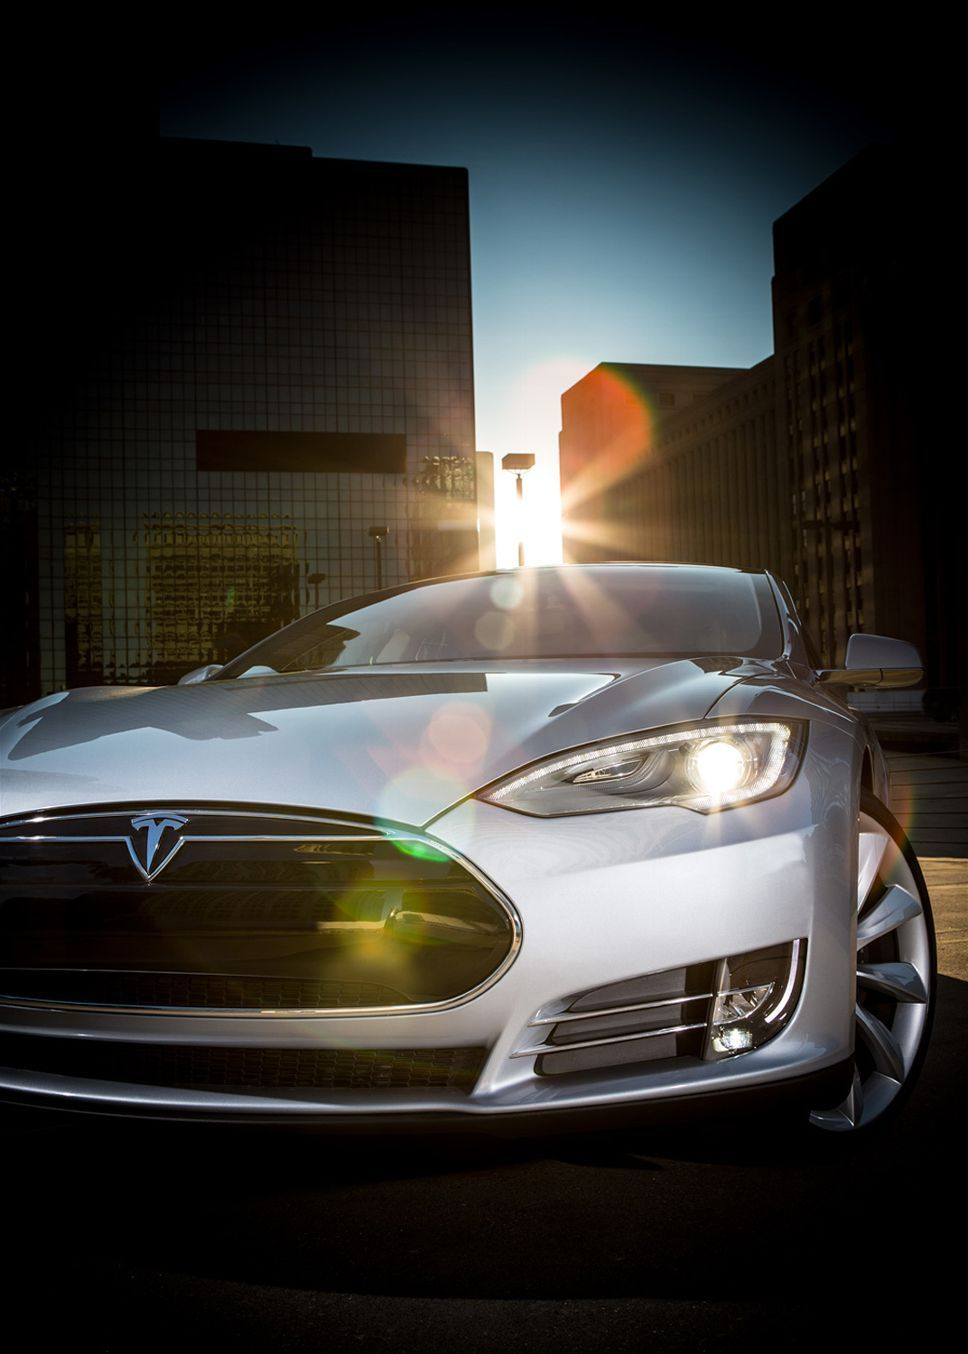 Tesla Model S, Automobile Magazine Automobile of the Year 2013